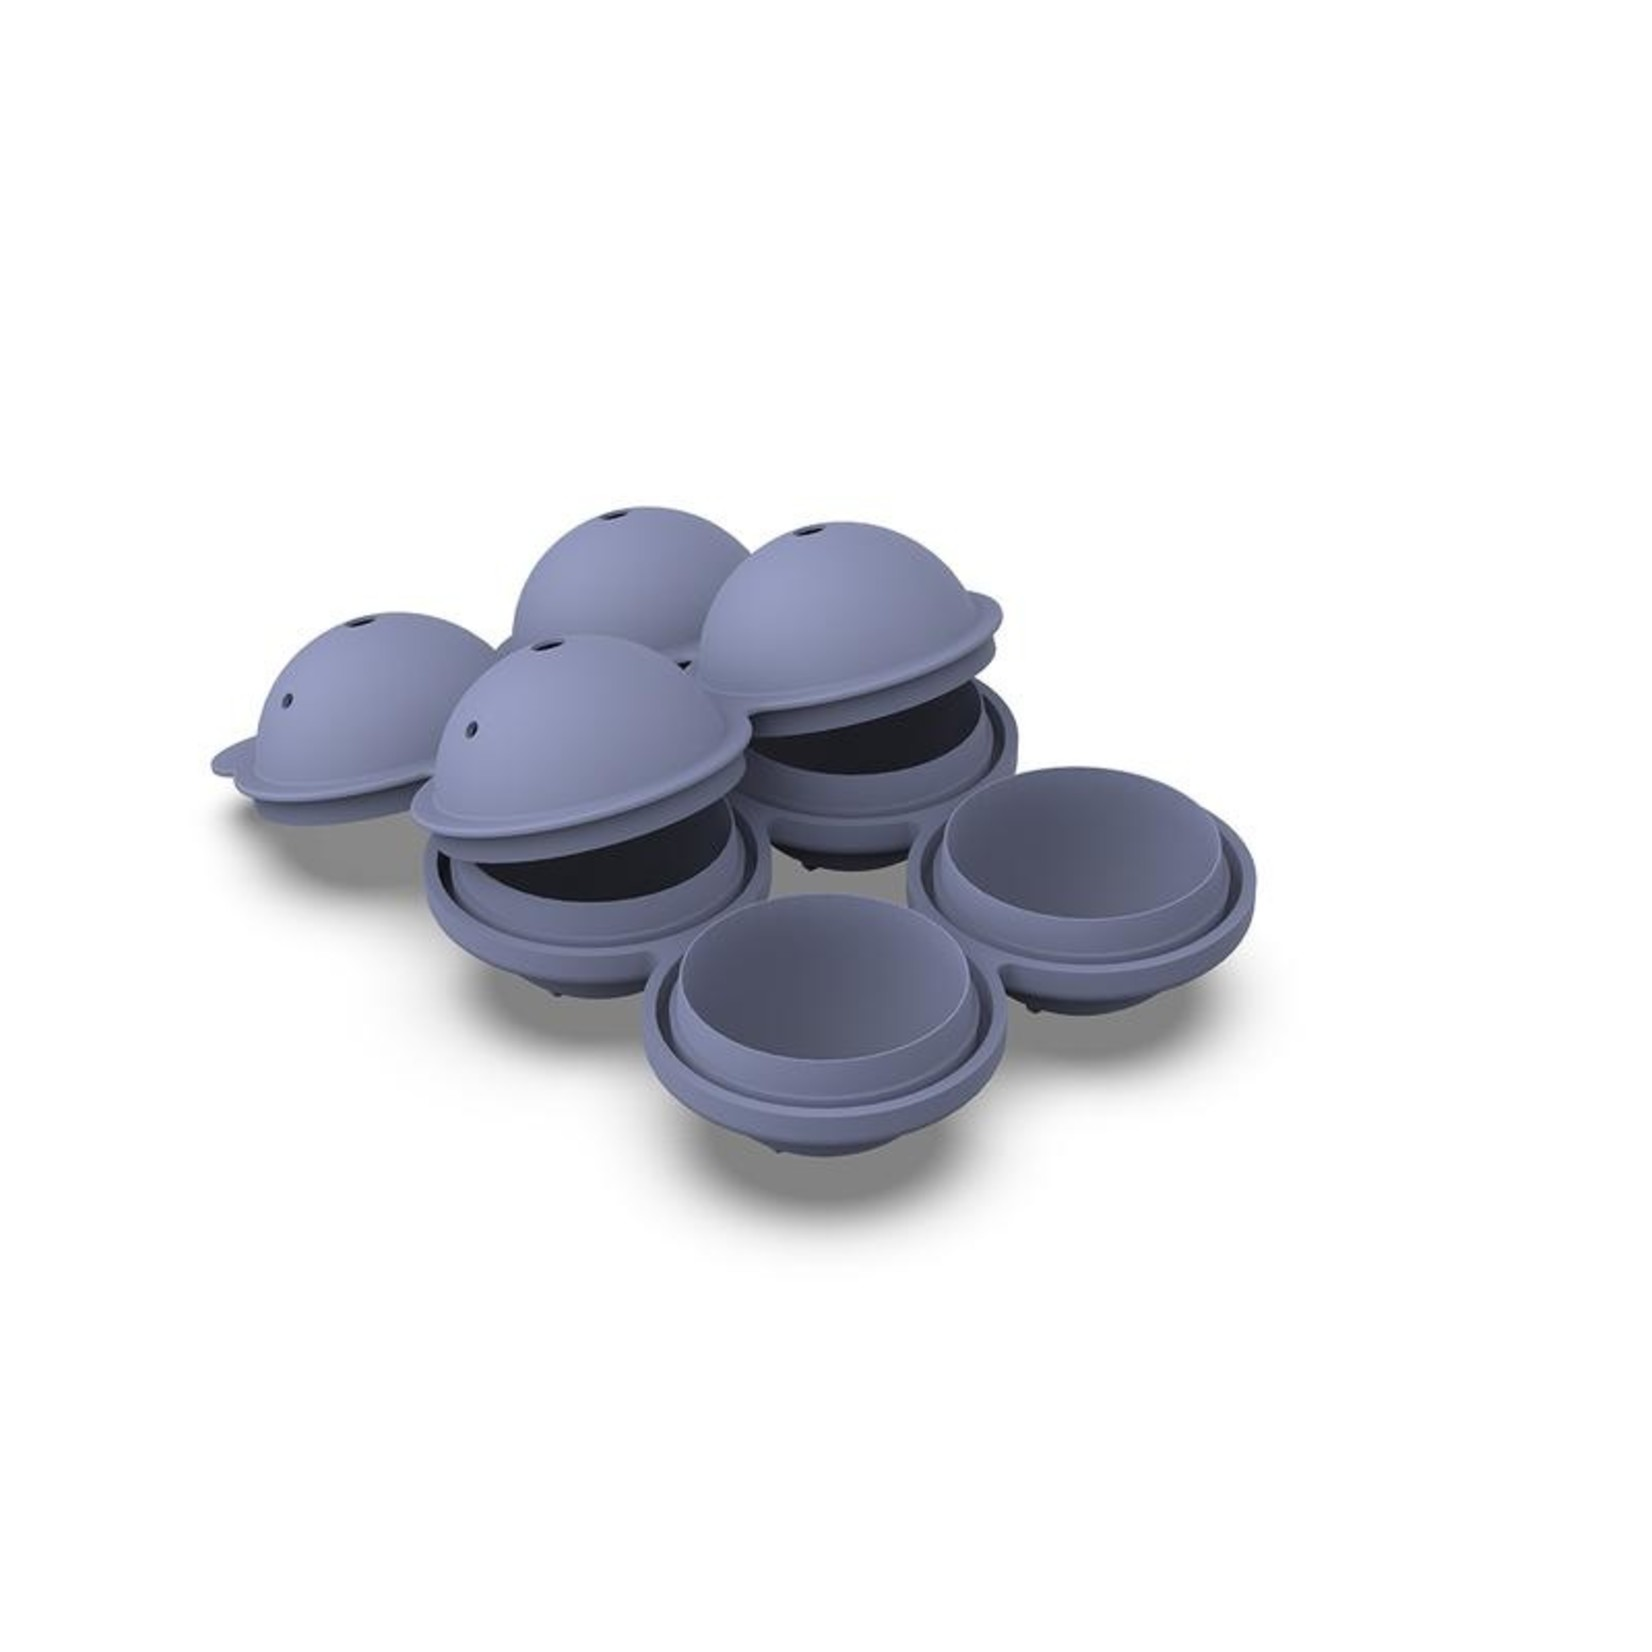 W & P Designs Sphere Ice Tray in Blue